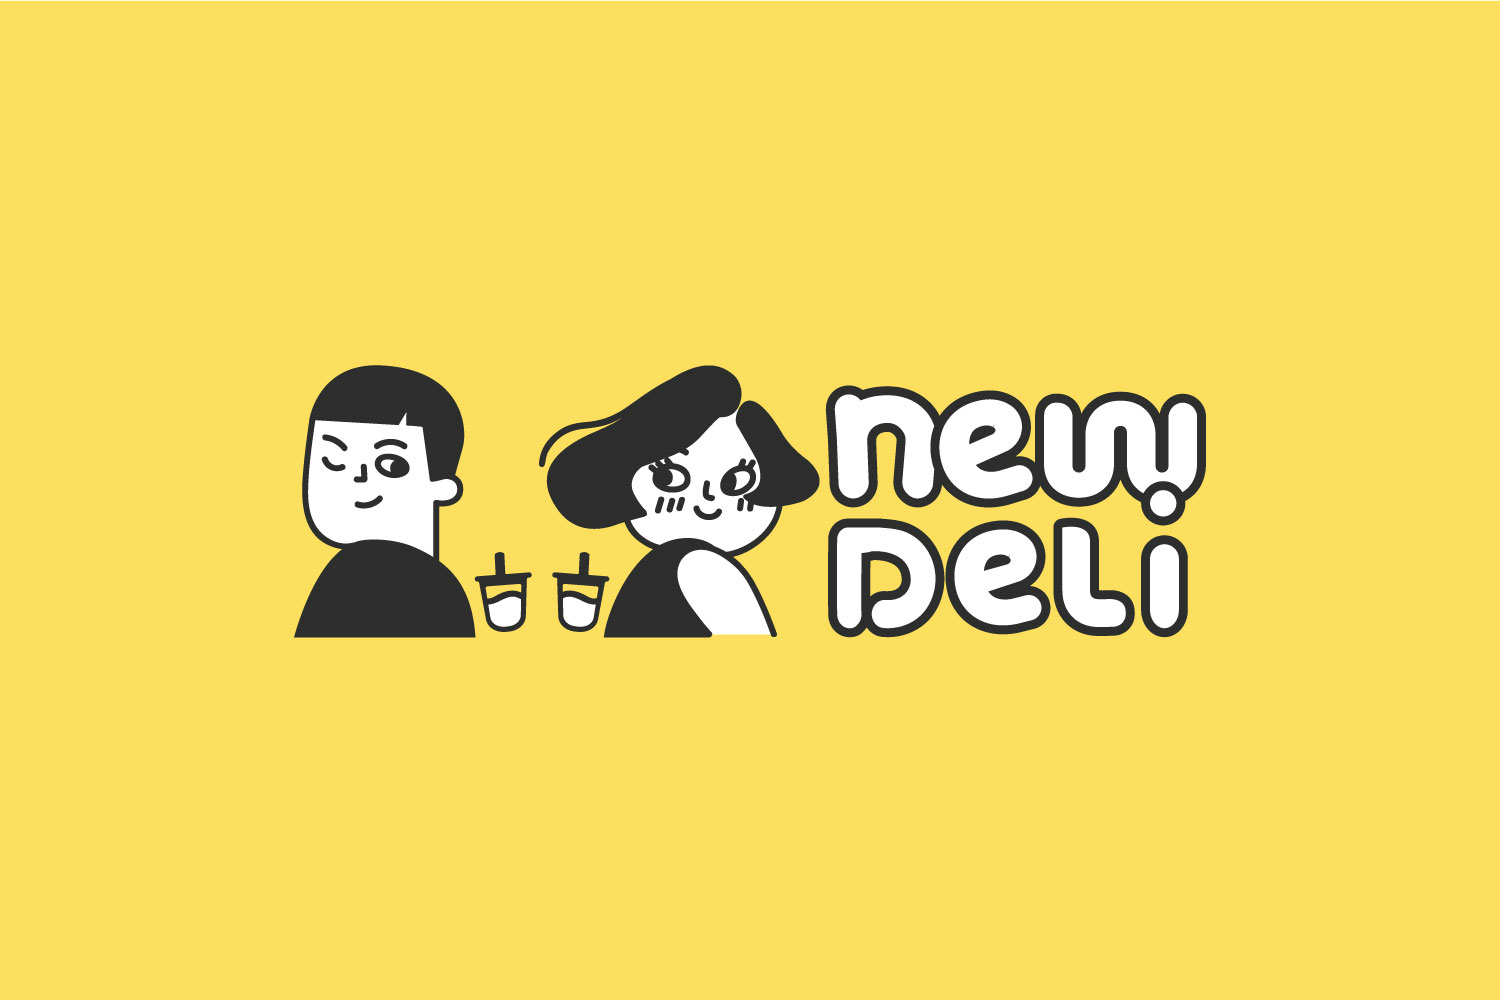 New Deli full logo on yellow background